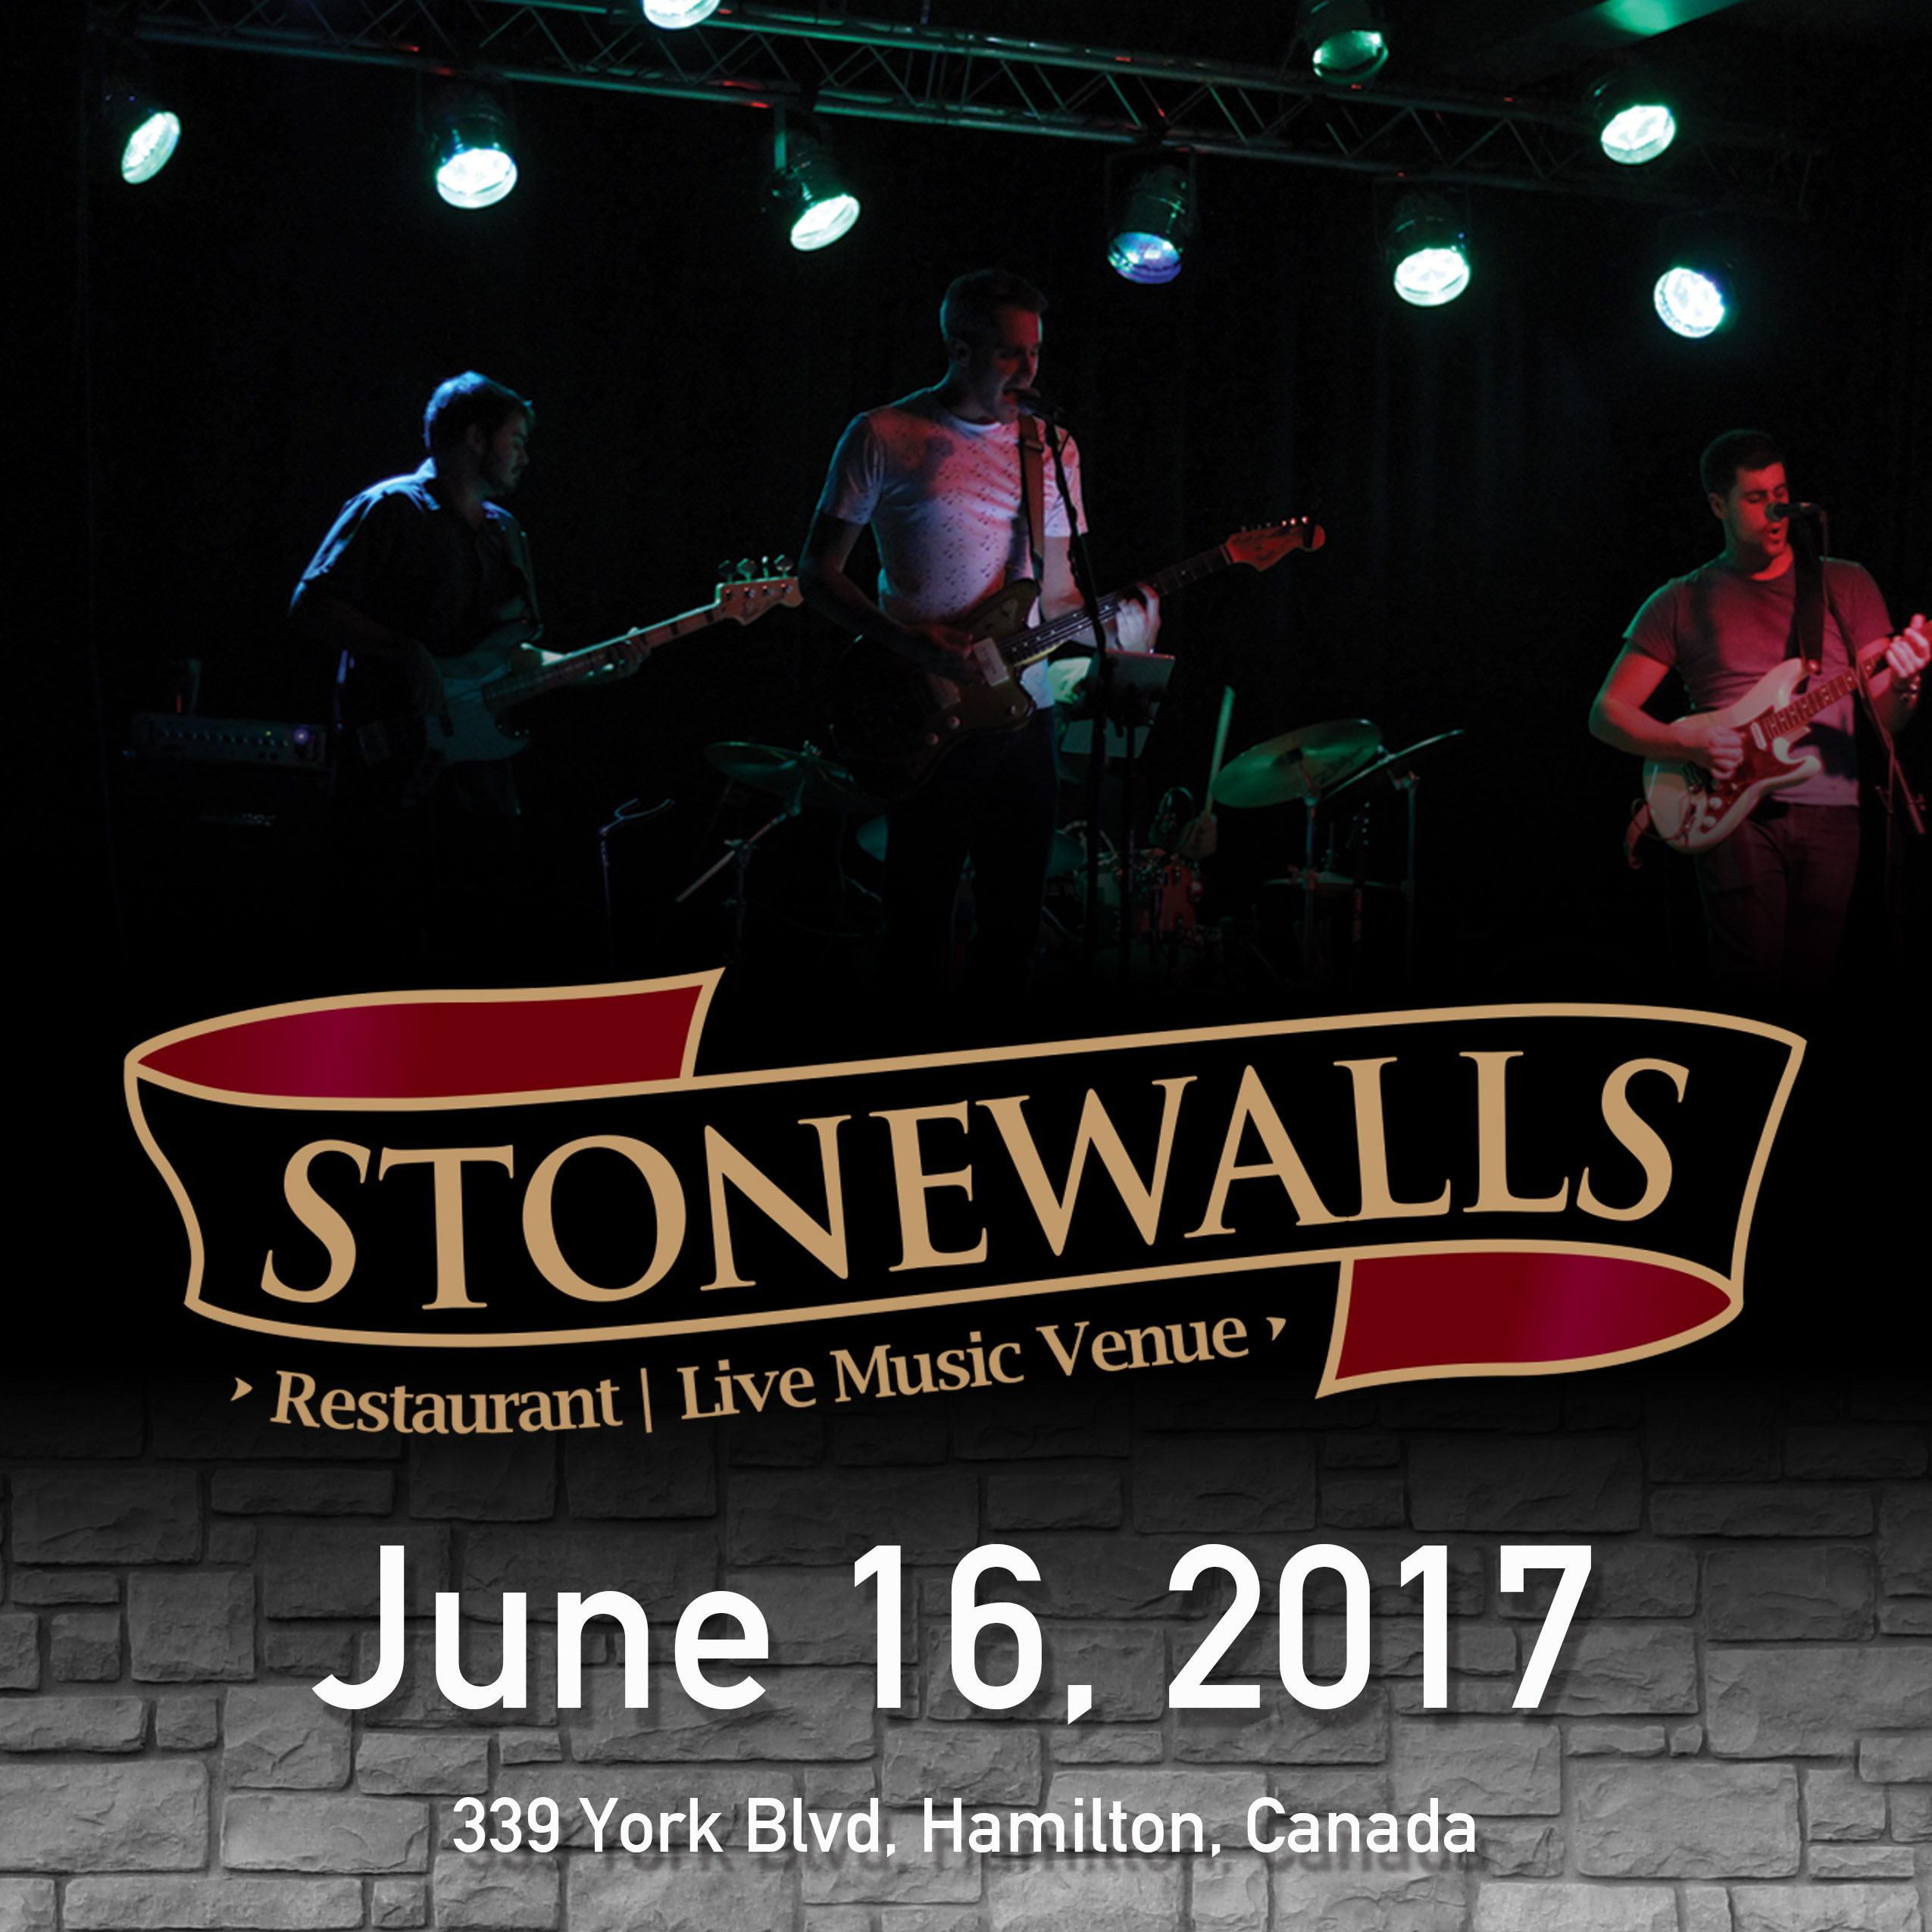 June 16, 2017 Stonewalls copy